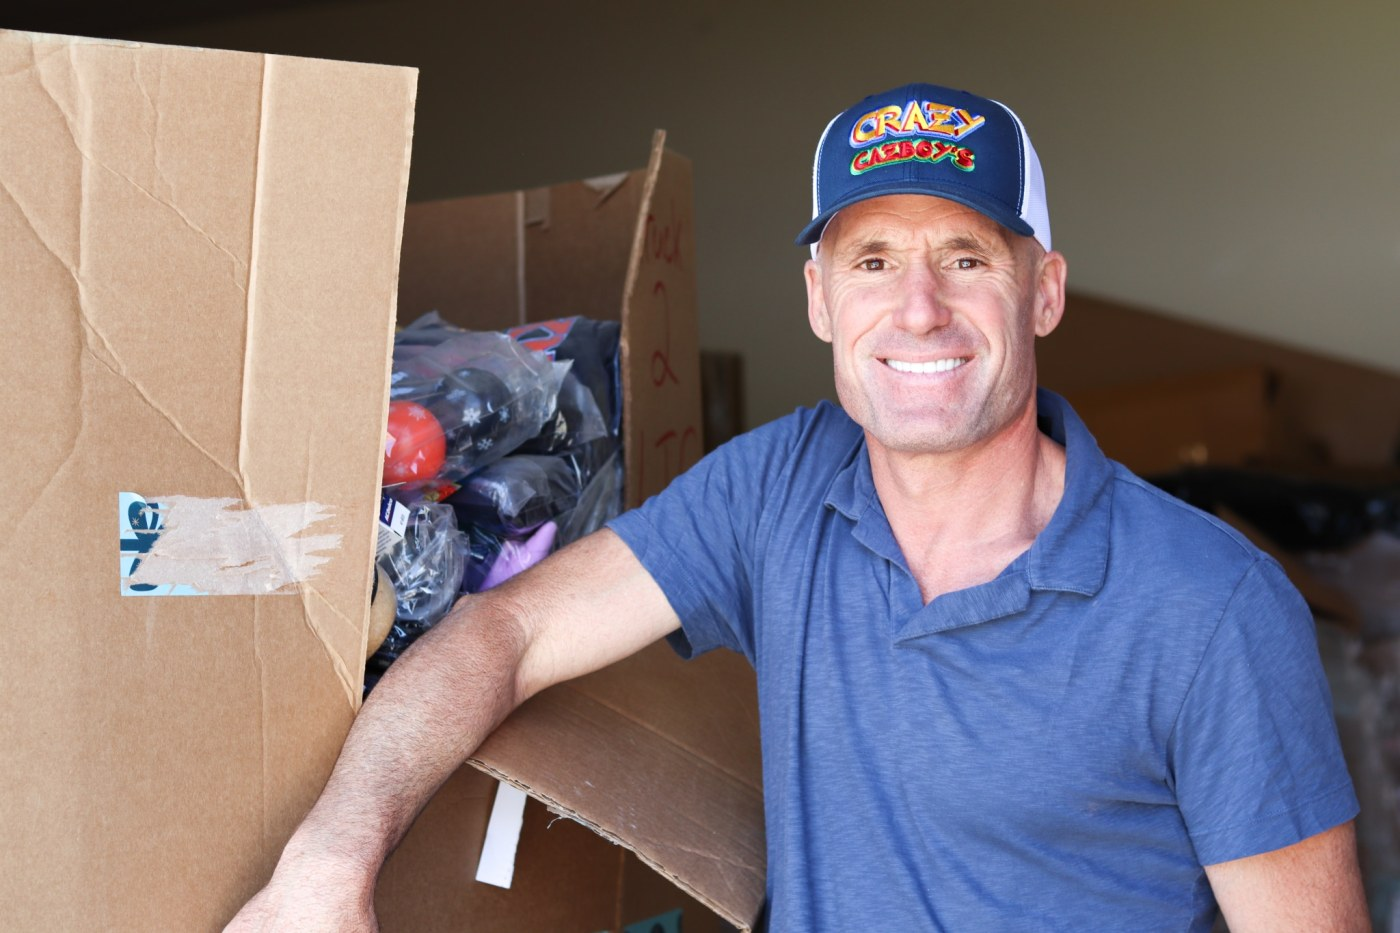 Crazy Cazboy a.k.a John Cassimus stands in front of one of the many large boxes of liquidated goods in the Crazy Cazboy warehouse. Cassimus will open the discount store Friday, May 10th in Homewood. (Photo by Christine Hull for Bham Now)